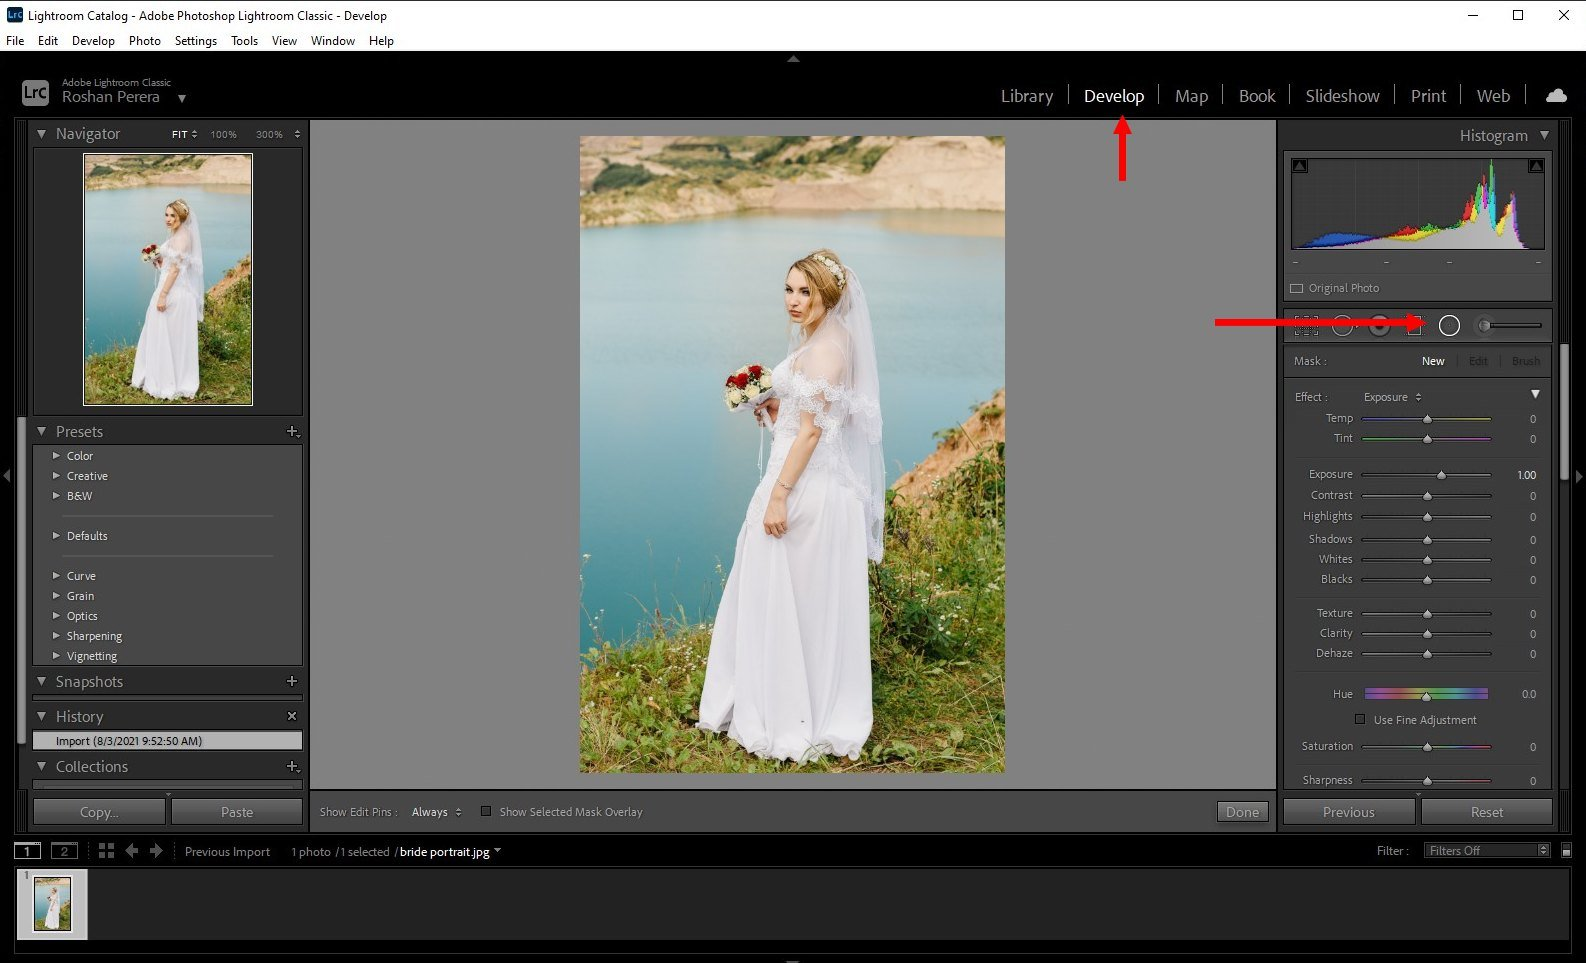 how to blur background lightroom classic - 1